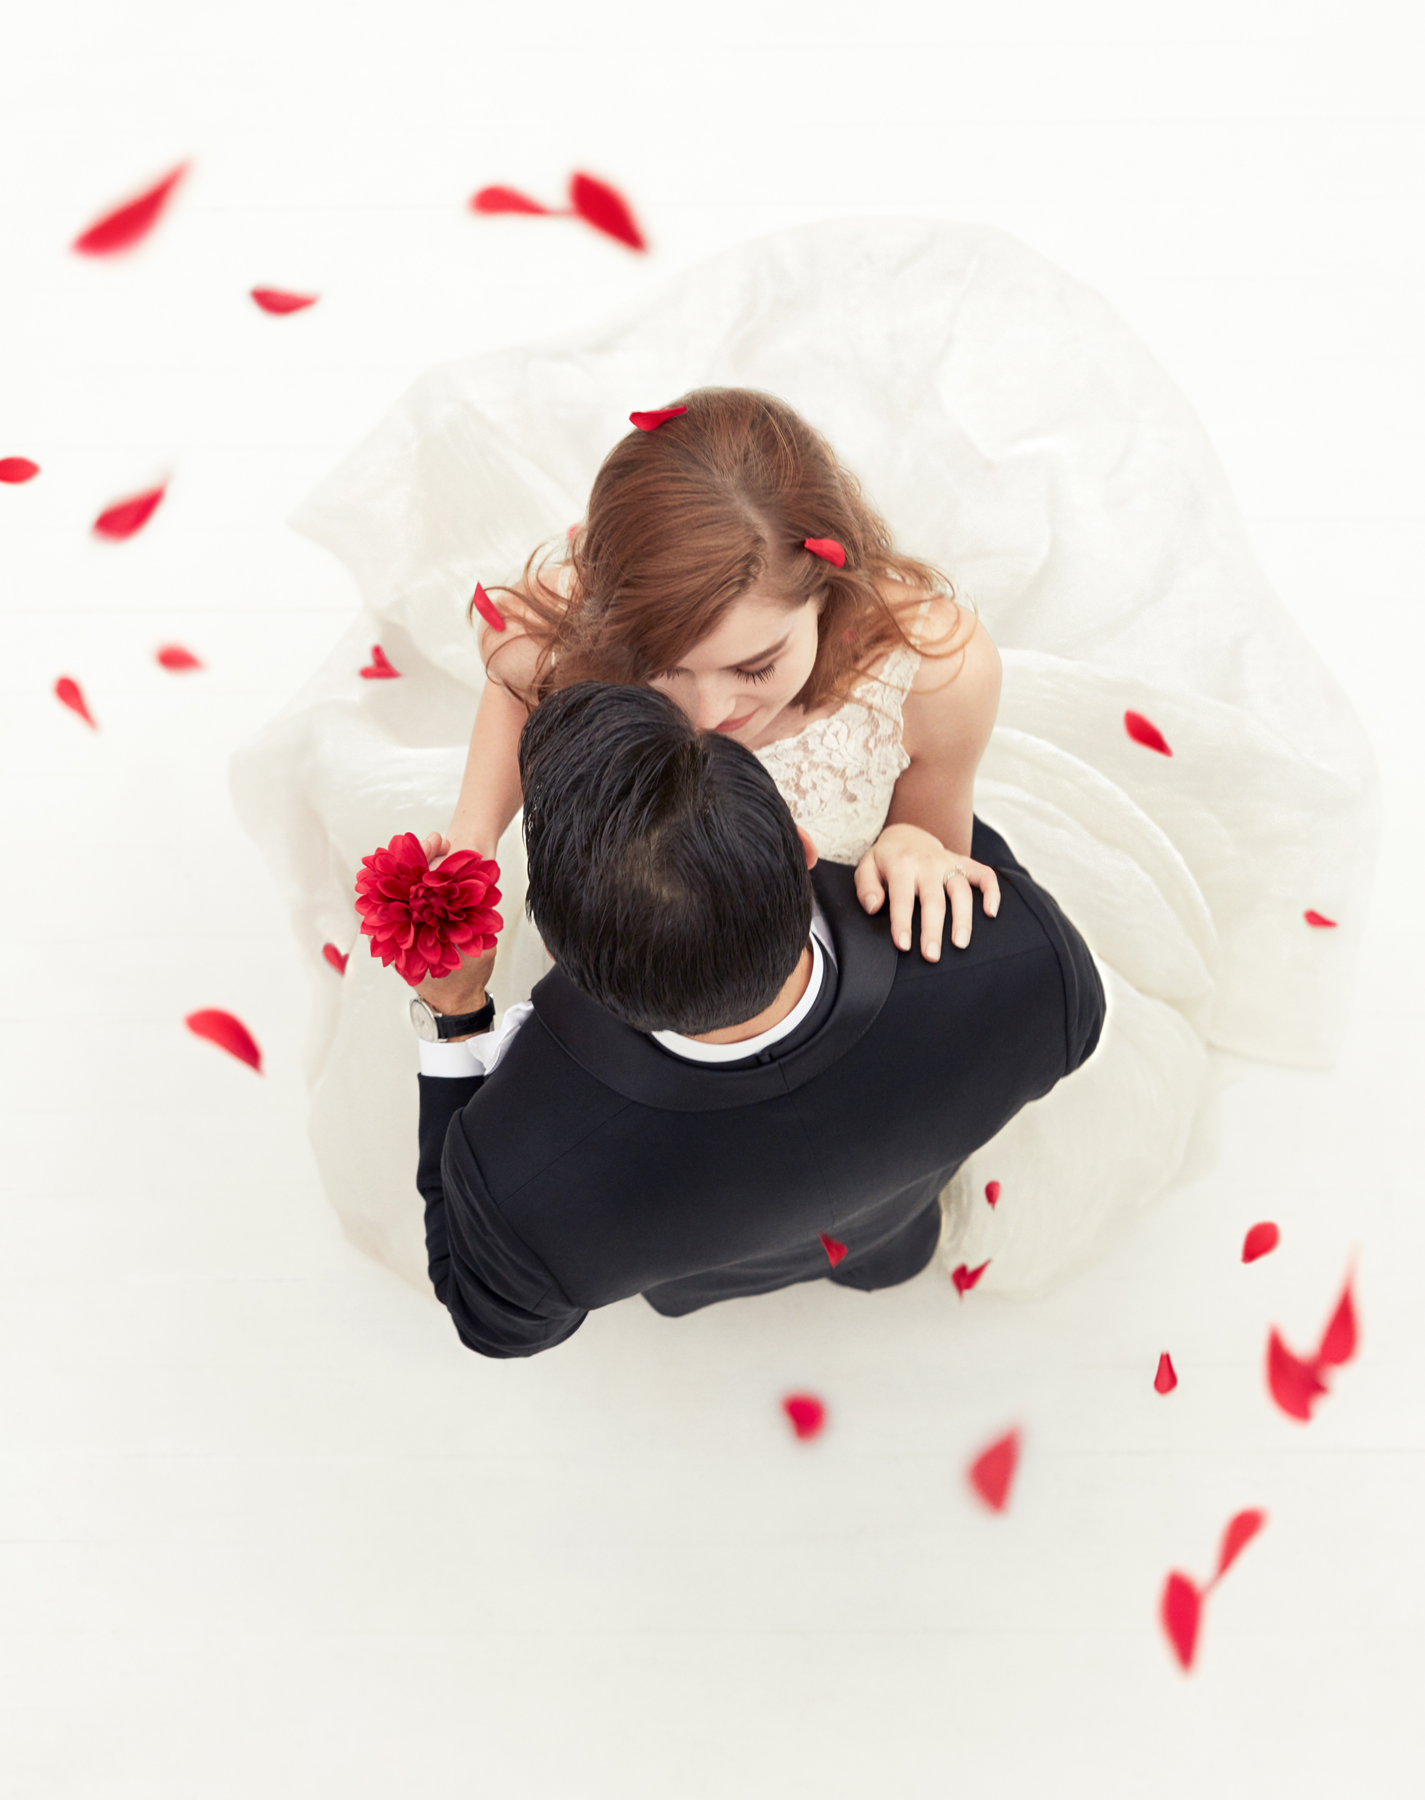 overhead image of bridal couple dancing surrounded by red flower petals